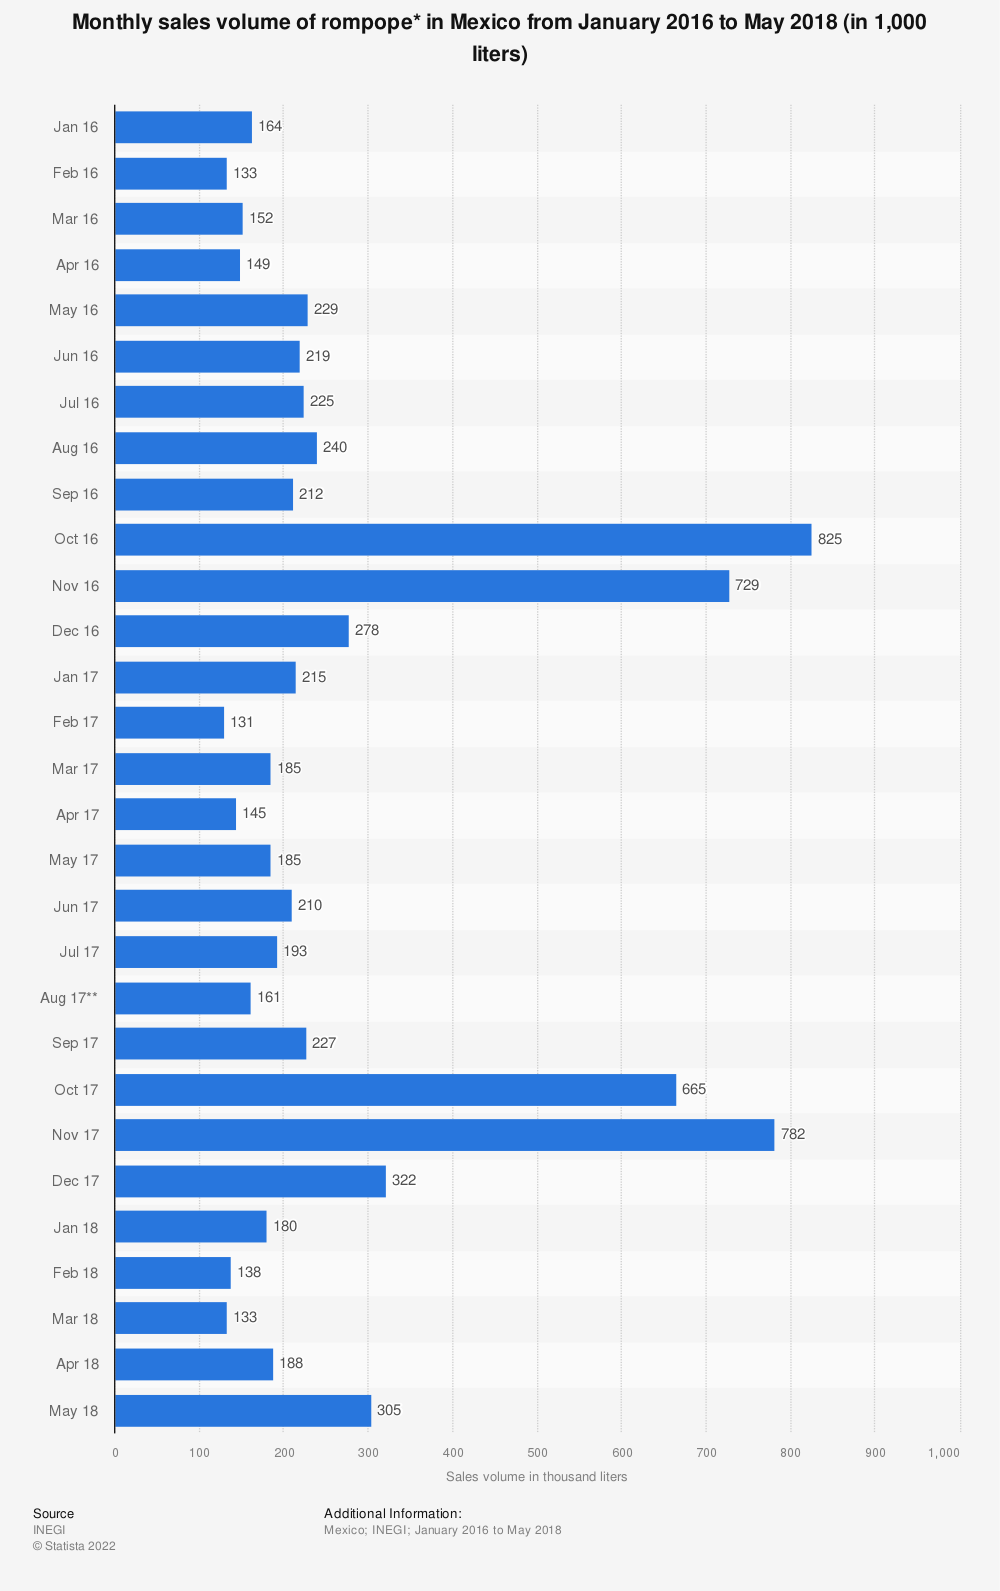 Statistic: Monthly sales volume of rompope* in Mexico from January 2016 to May 2018 (in 1,000 liters) | Statista